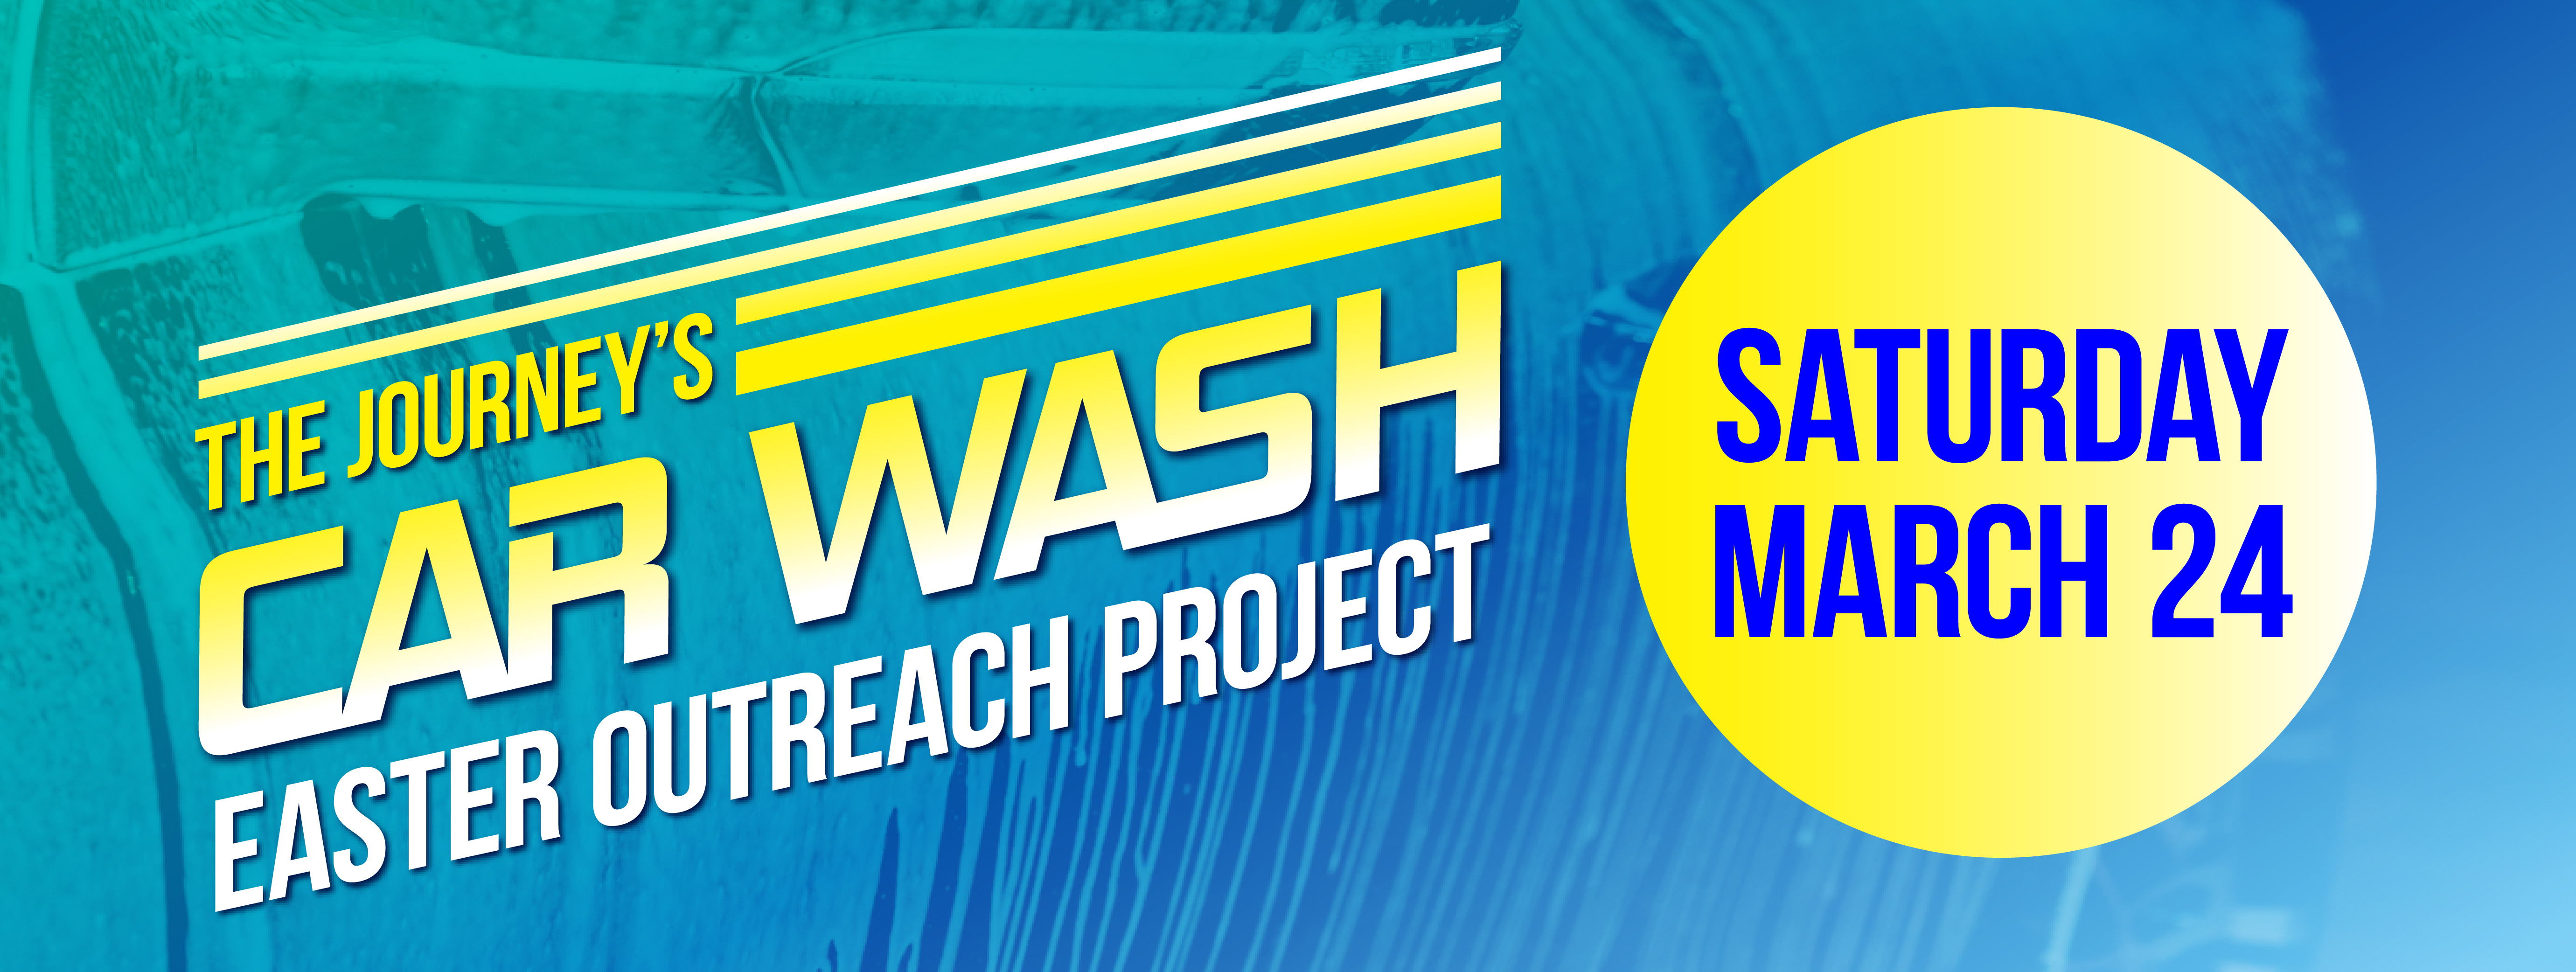 Car Wash Boca Raton >> Boca Church To Offer Free Professional Car Wash This Weekend